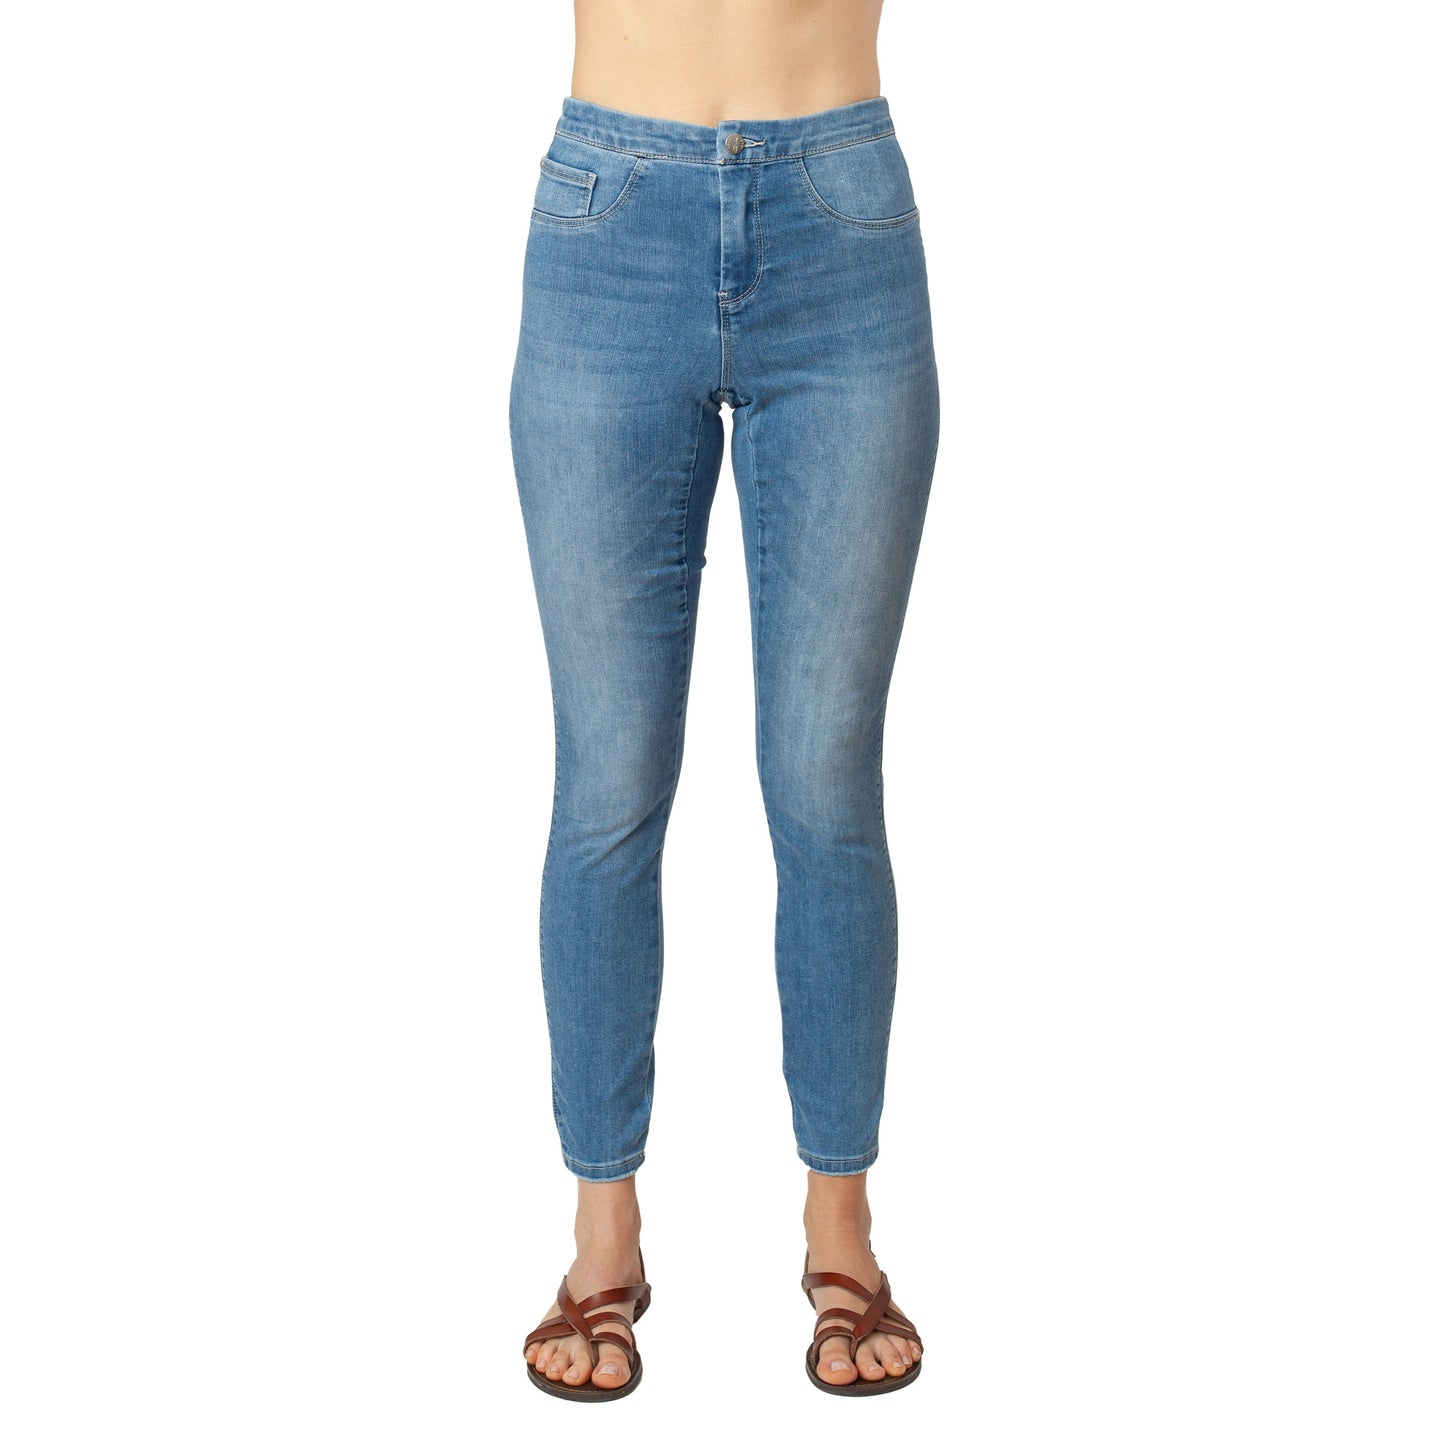 CCJ6006 LT Wash Blue Denim Basic Signature Style